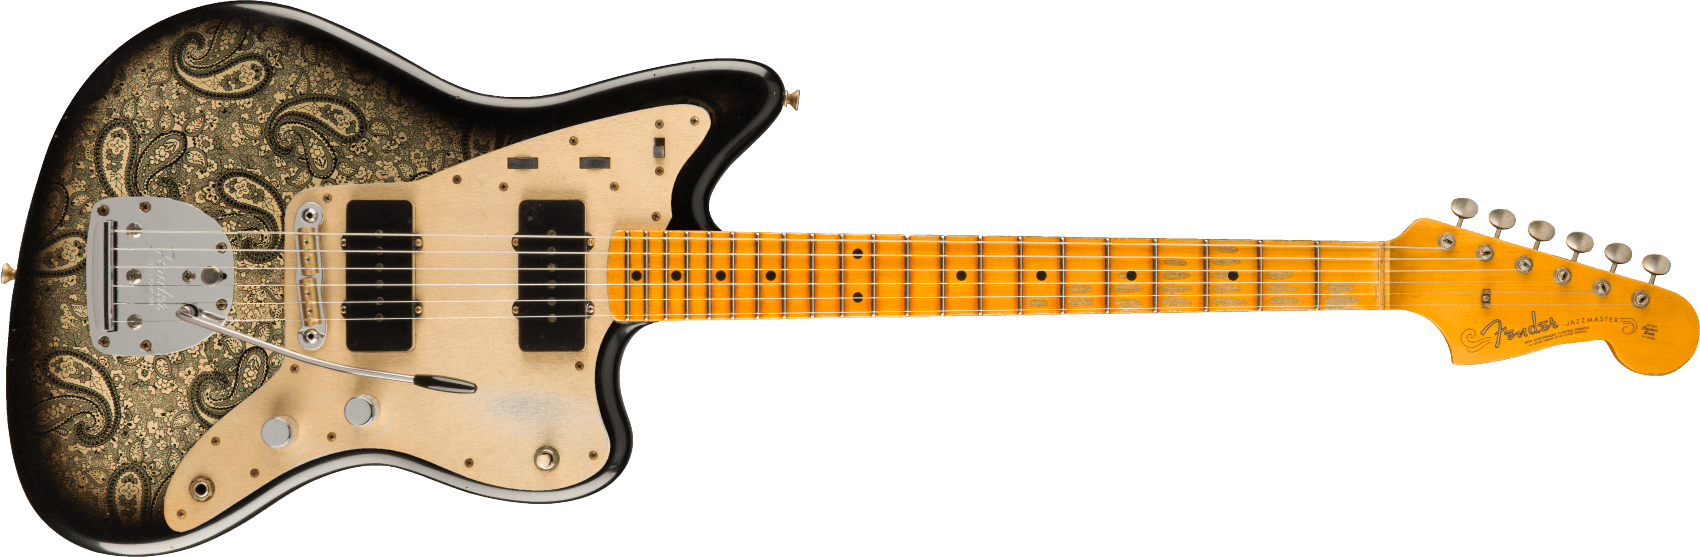 FENDER-Limited-Edition-Custom-Jazzmaster-Relic-Maple-Fingerboard-Aged-Black-Paisley-sku-571005356